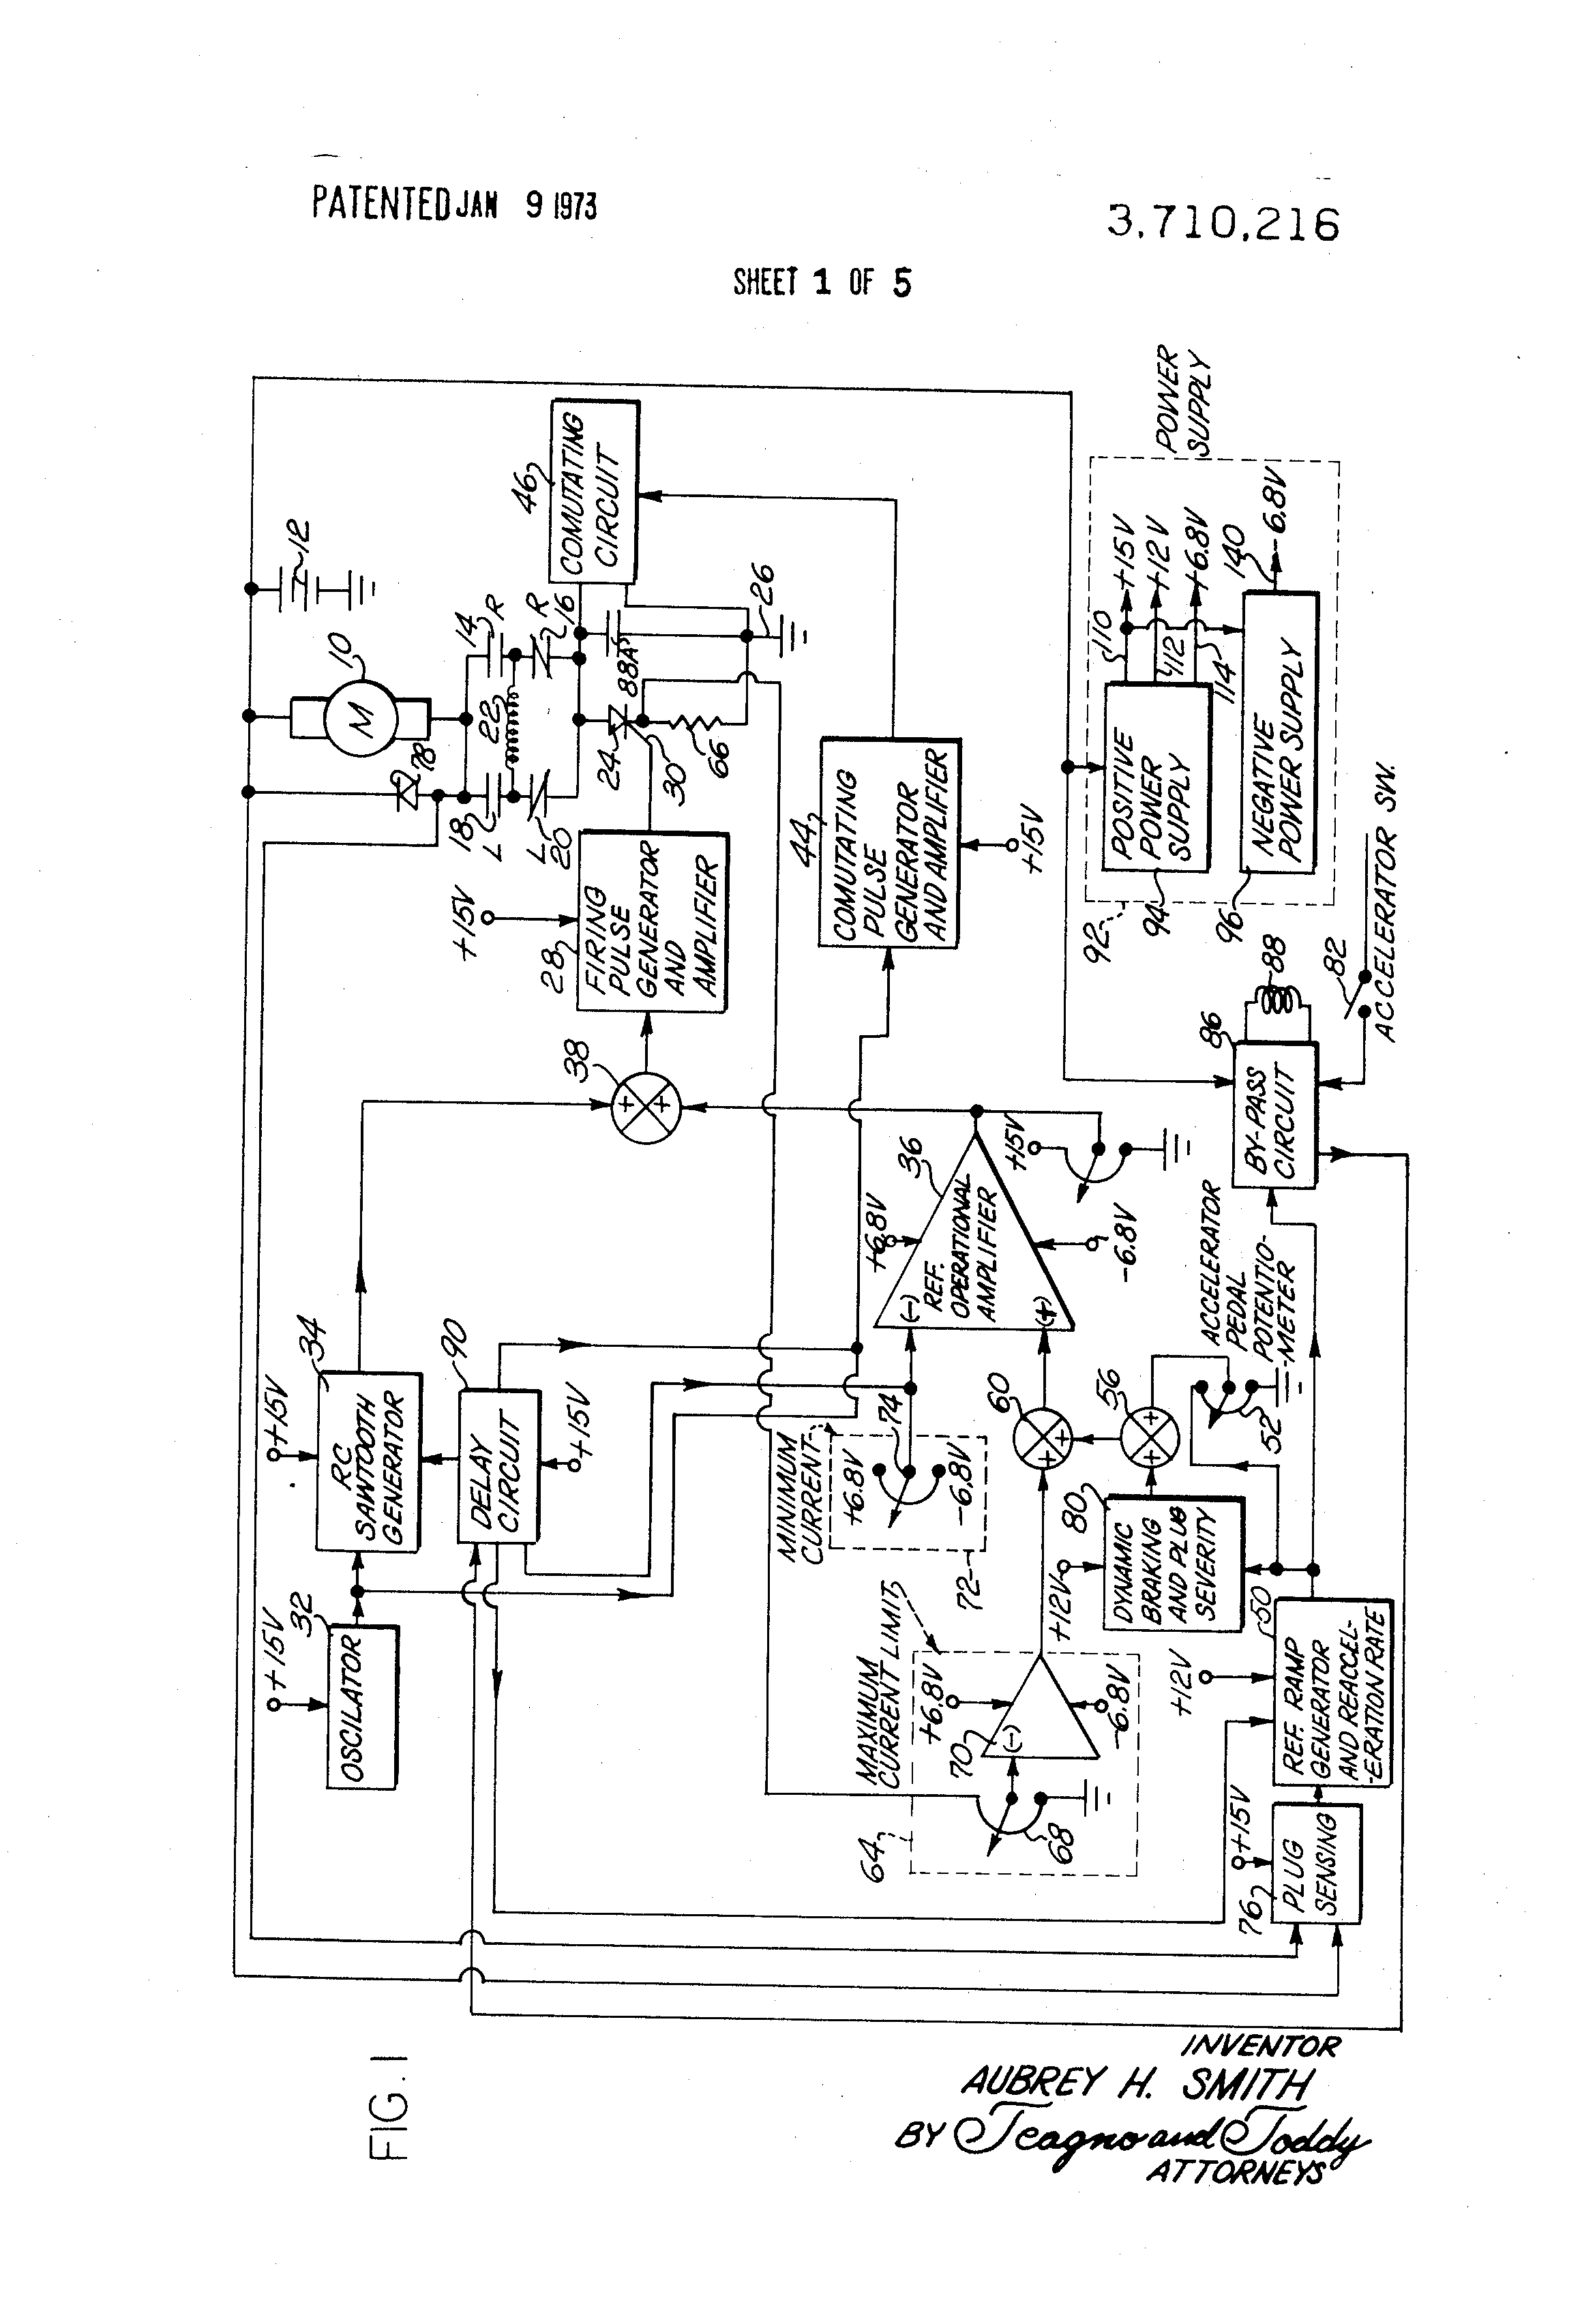 Scr Motor Diagram Best Wiring Library Scrcontrolheater Controlcircuit Circuit Seekiccom Us3710216 Speed Control With Plug Sensing Patent Drawing Dc Servo